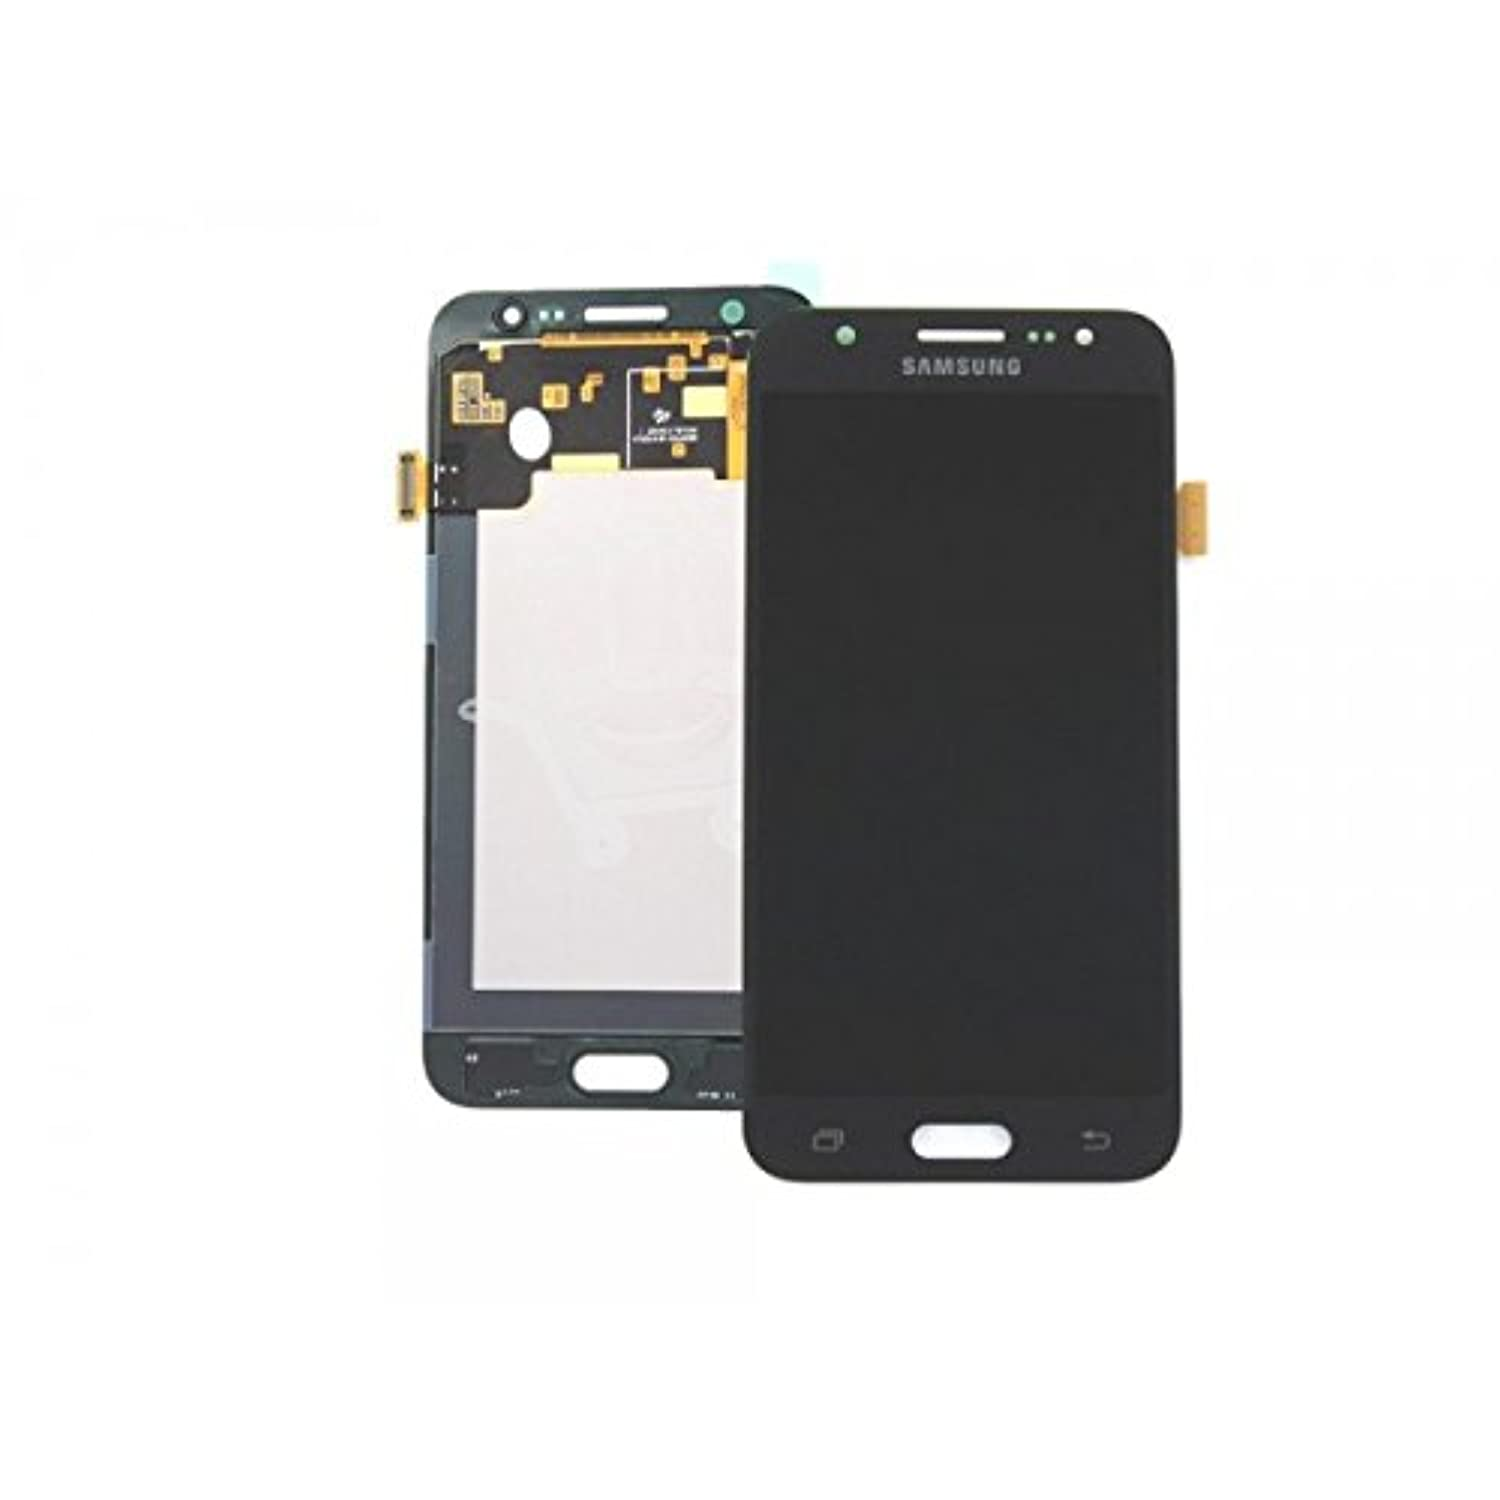 Third party ecran lcd tactile assembl samsung galaxy for Photo ecran galaxy j5